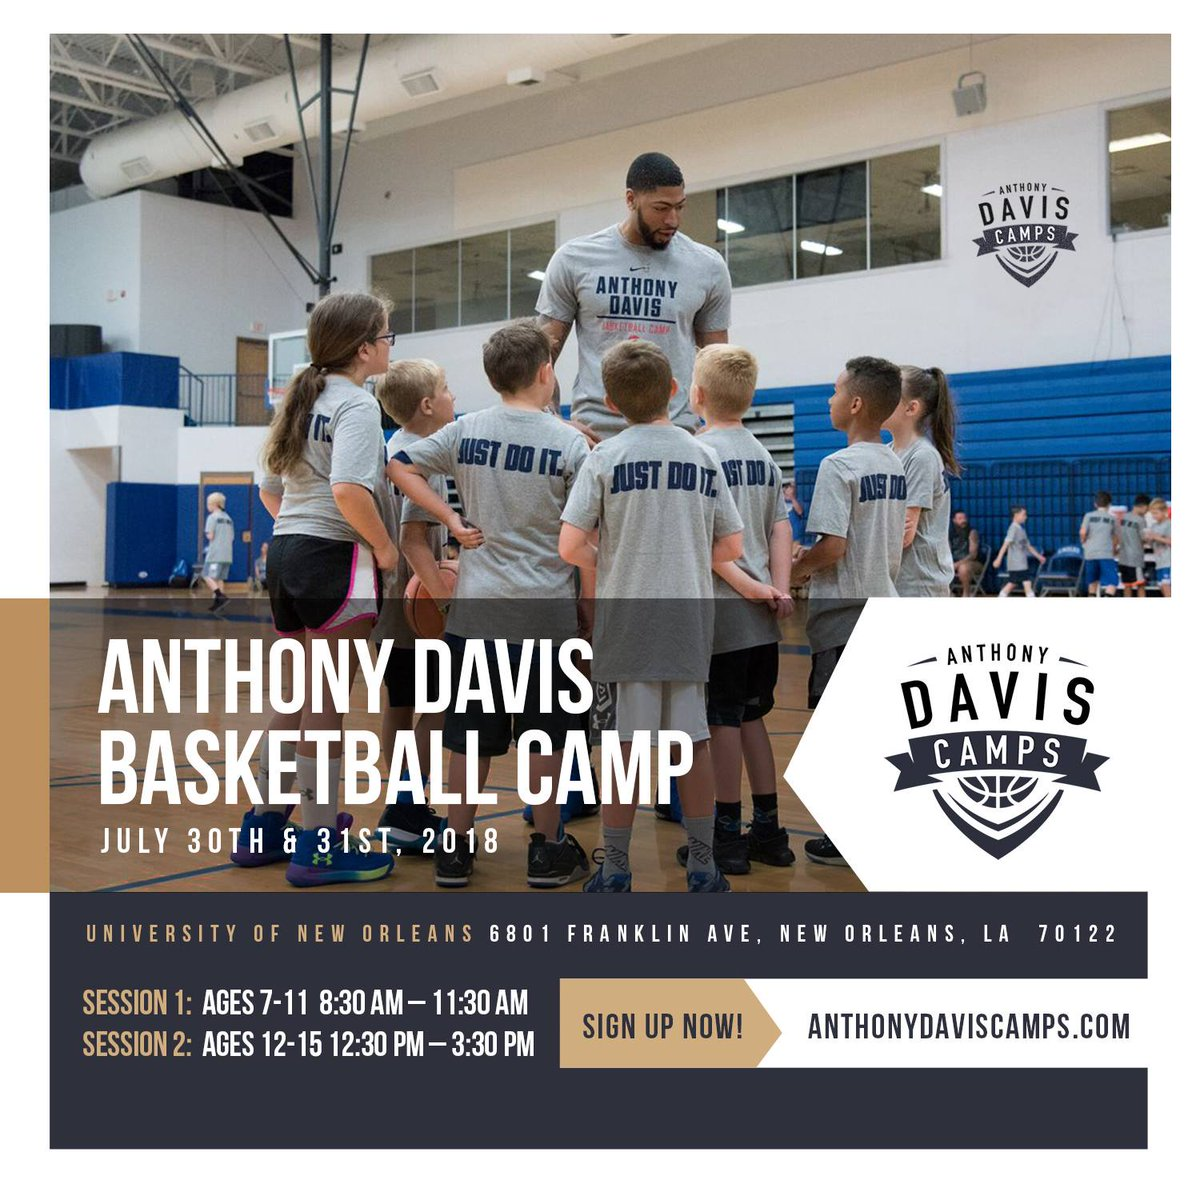 Only a few spots left for my camp next week in NOLA! Cant wait to put in some work 💪🏾 Sign up at anthonydaviscamps.com